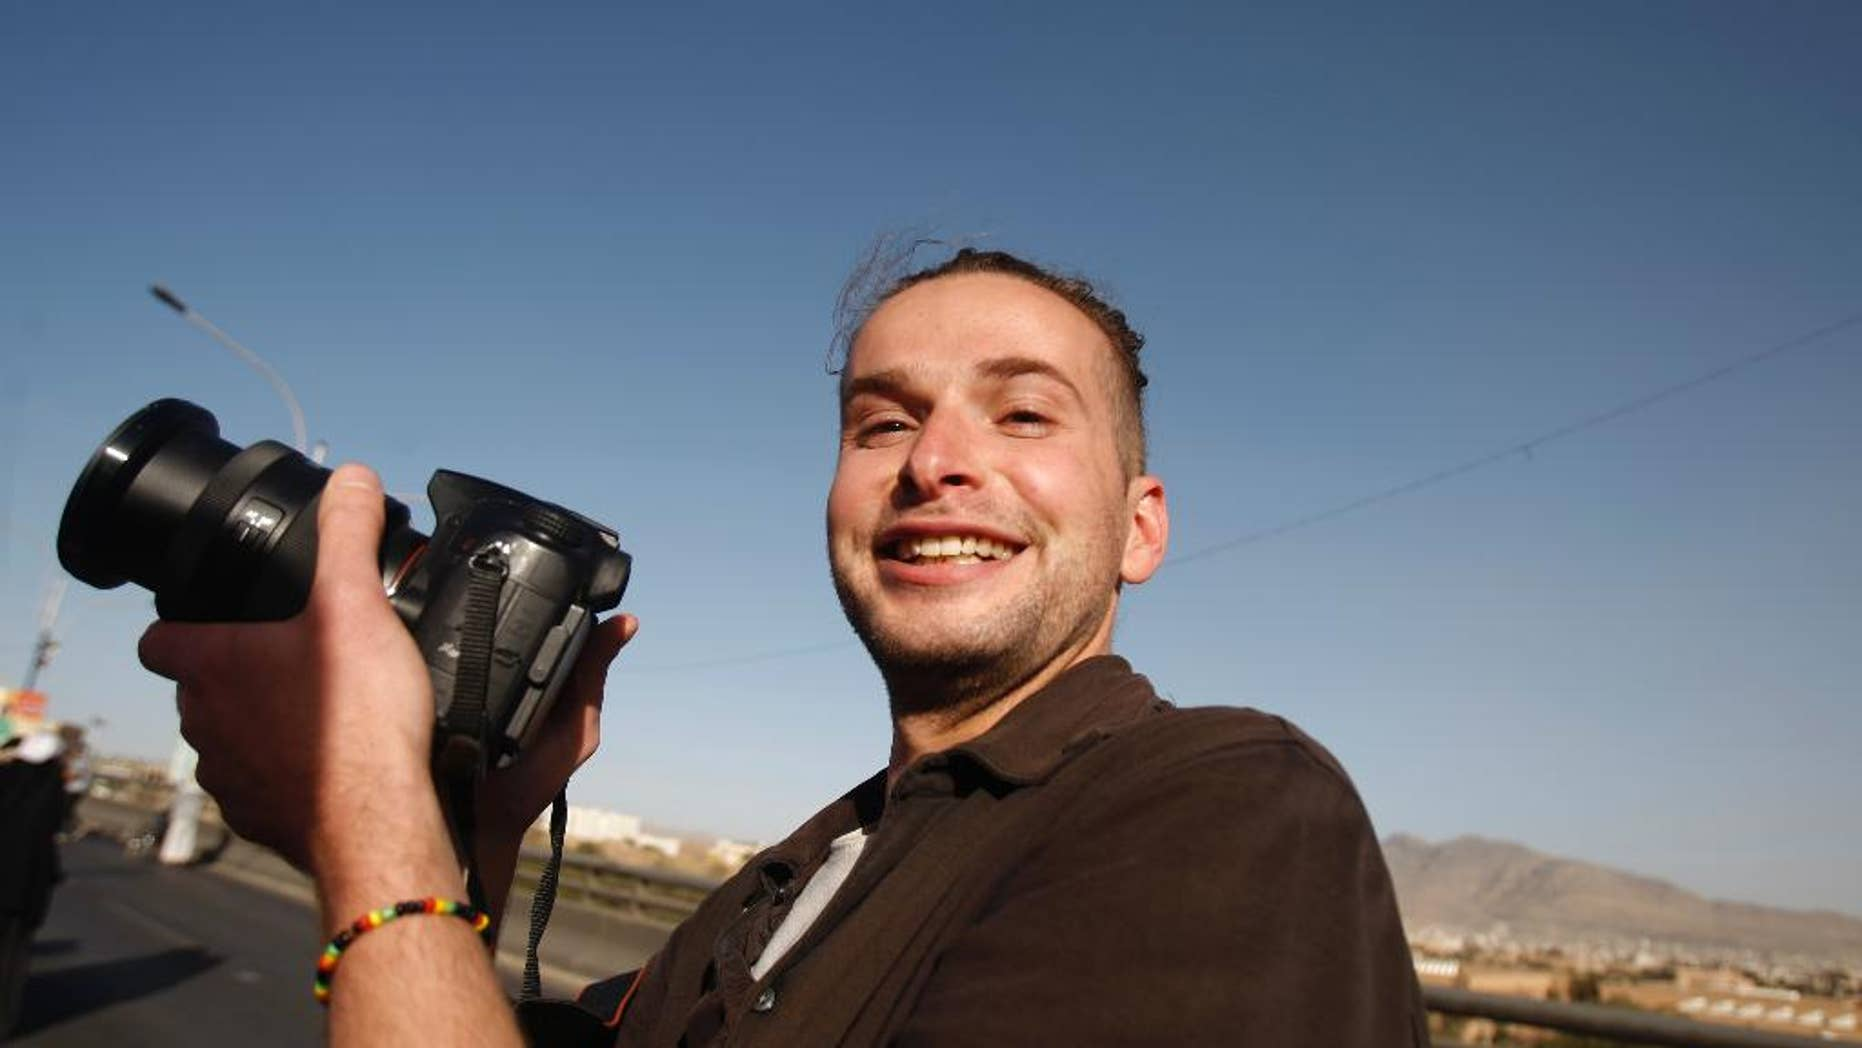 FILE - In this Monday, Feb. 11, 2013 file photo, Luke Somers, 33, an American photojournalist who was kidnapped over a year ago by al-Qaida, poses for a picture during a parade marking the second anniversary of the revolution in Sanaa, Yemen. Somers has been killed in a failed rescue attempt, his sister said Saturday, Dec. 6, 2014. Lucy Somers told The Associated Press that she and her father learned of her 33-year-old brother Luke Somers' death from FBI agents at 0500 GMT (12 a.m. EST) Saturday. (AP Photo/Hani Mohammed, File)